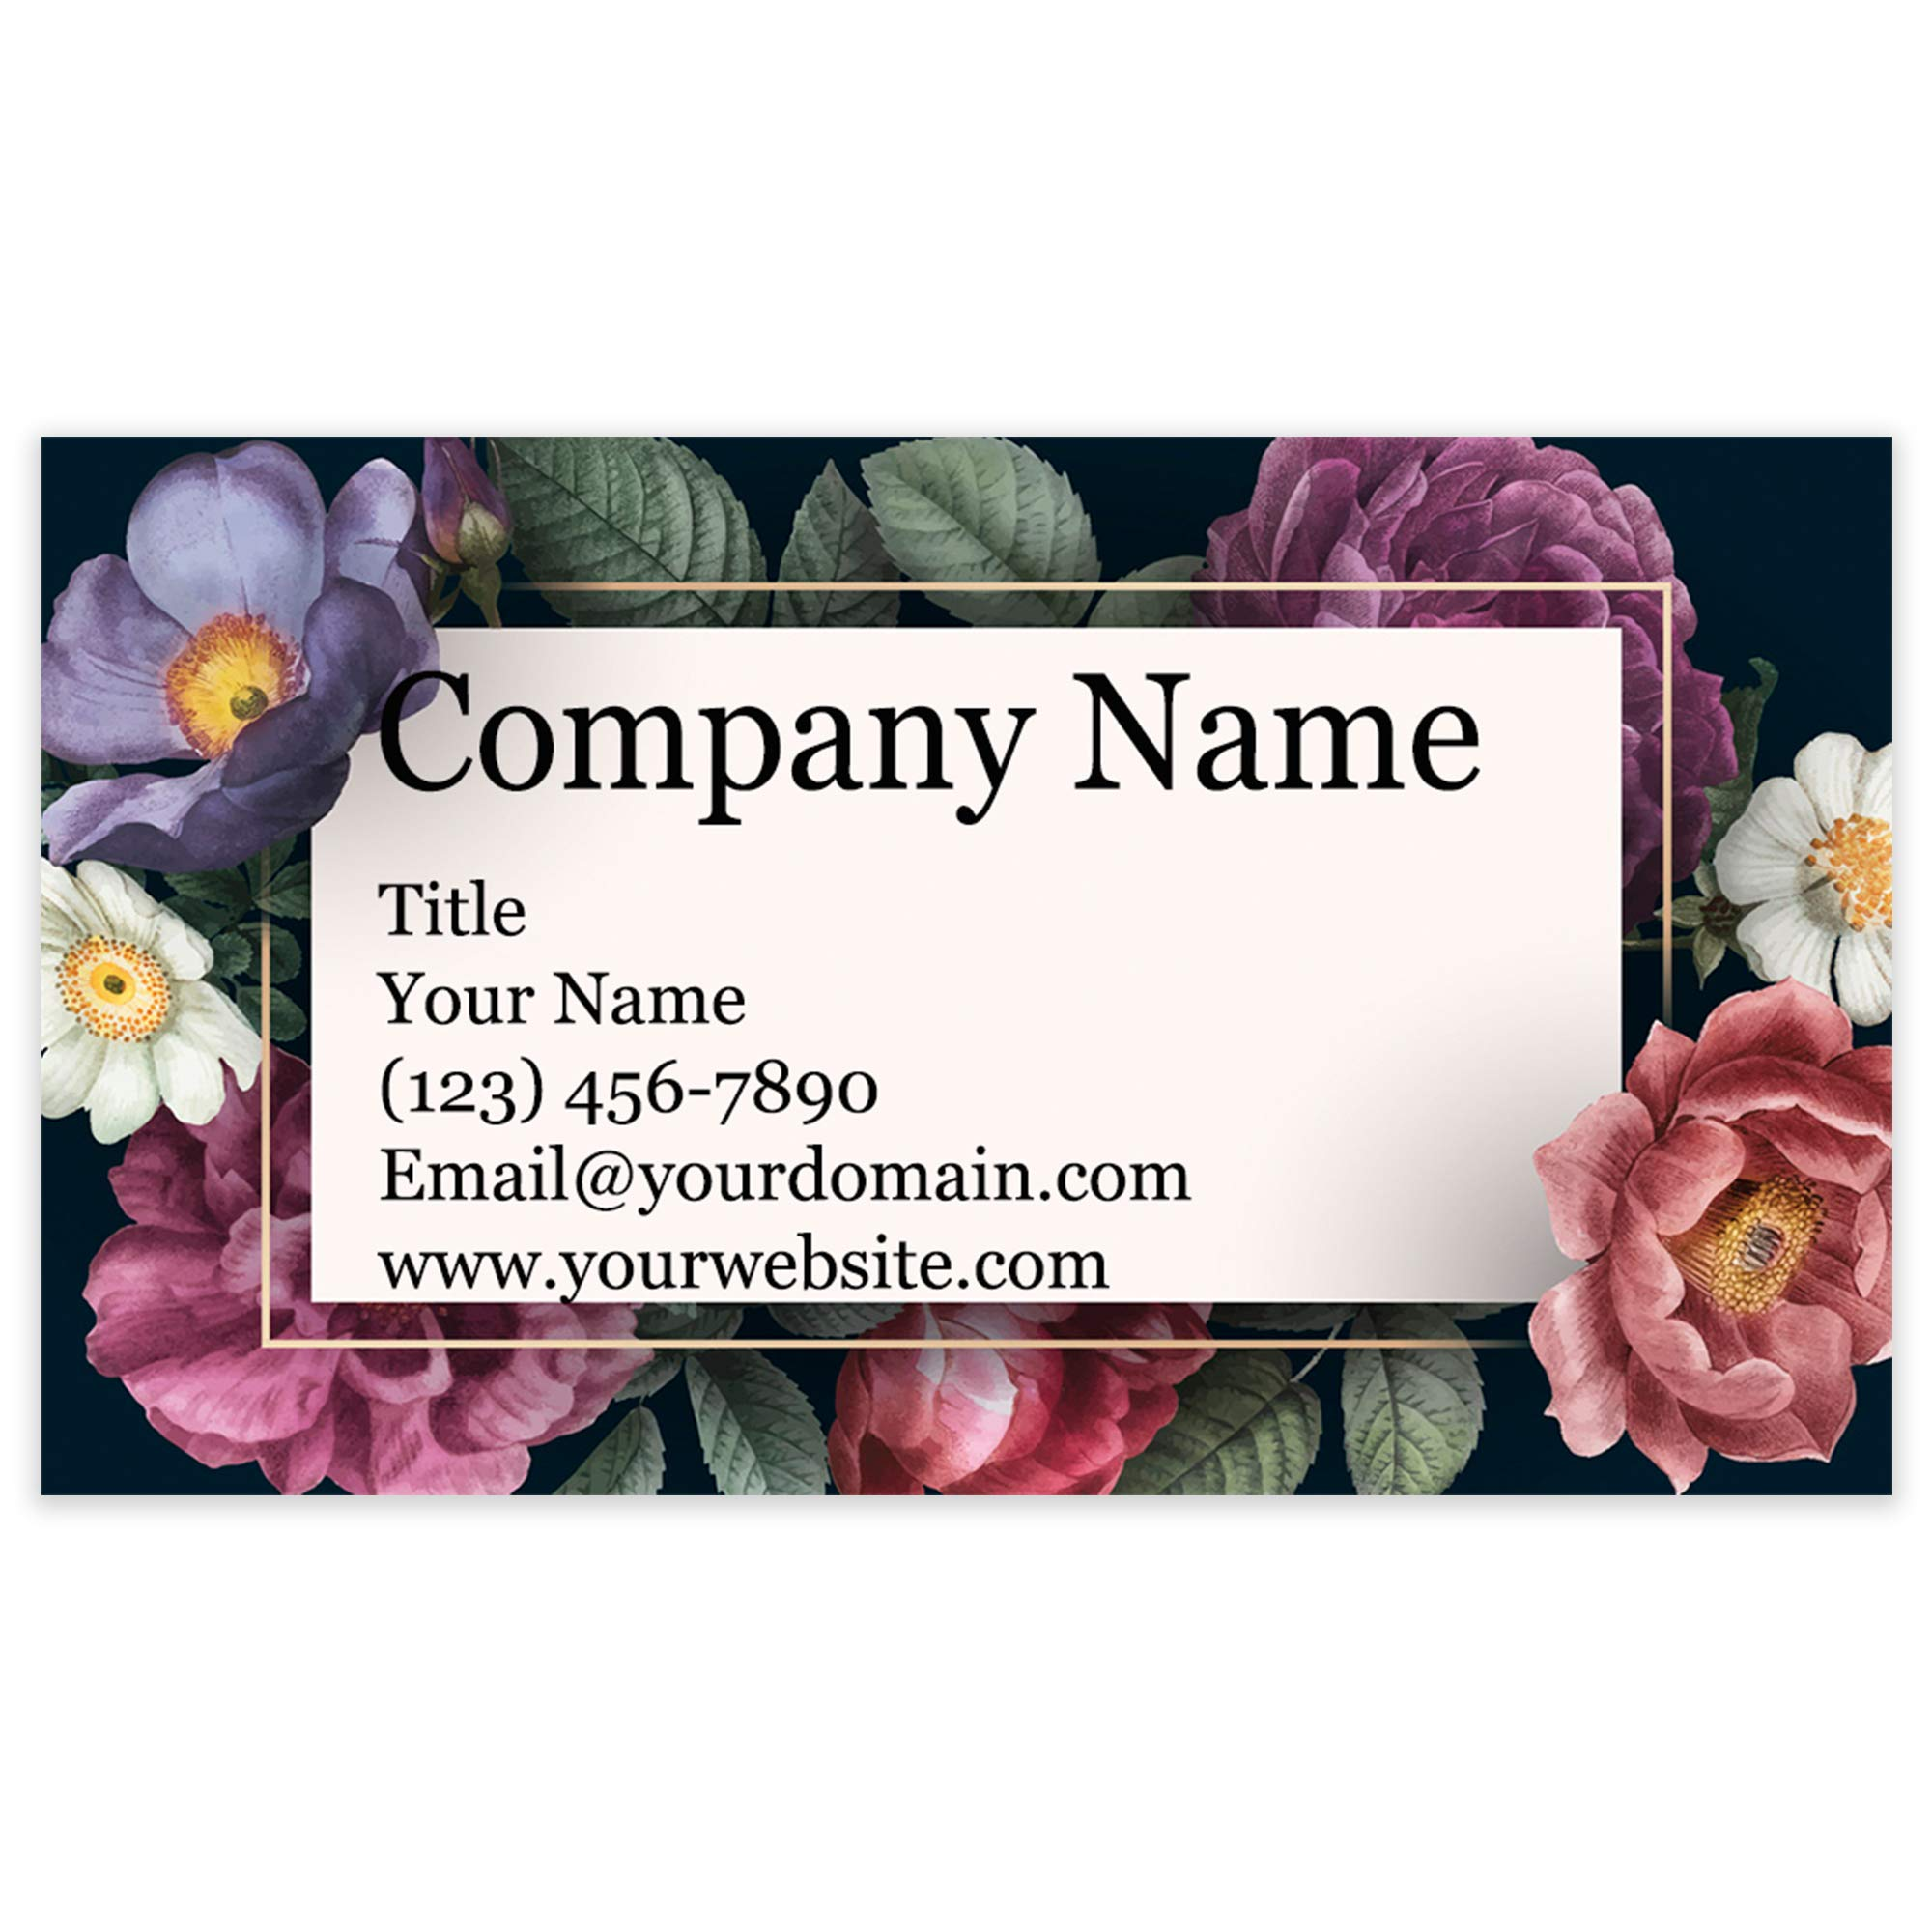 "Personalized Floral Design Business Cards 3.5"" x 2"" - Recycled or Matte Card Stock - 100% Made in the U.S.A. - Over 20 Floral Designs! (Black Floral)"